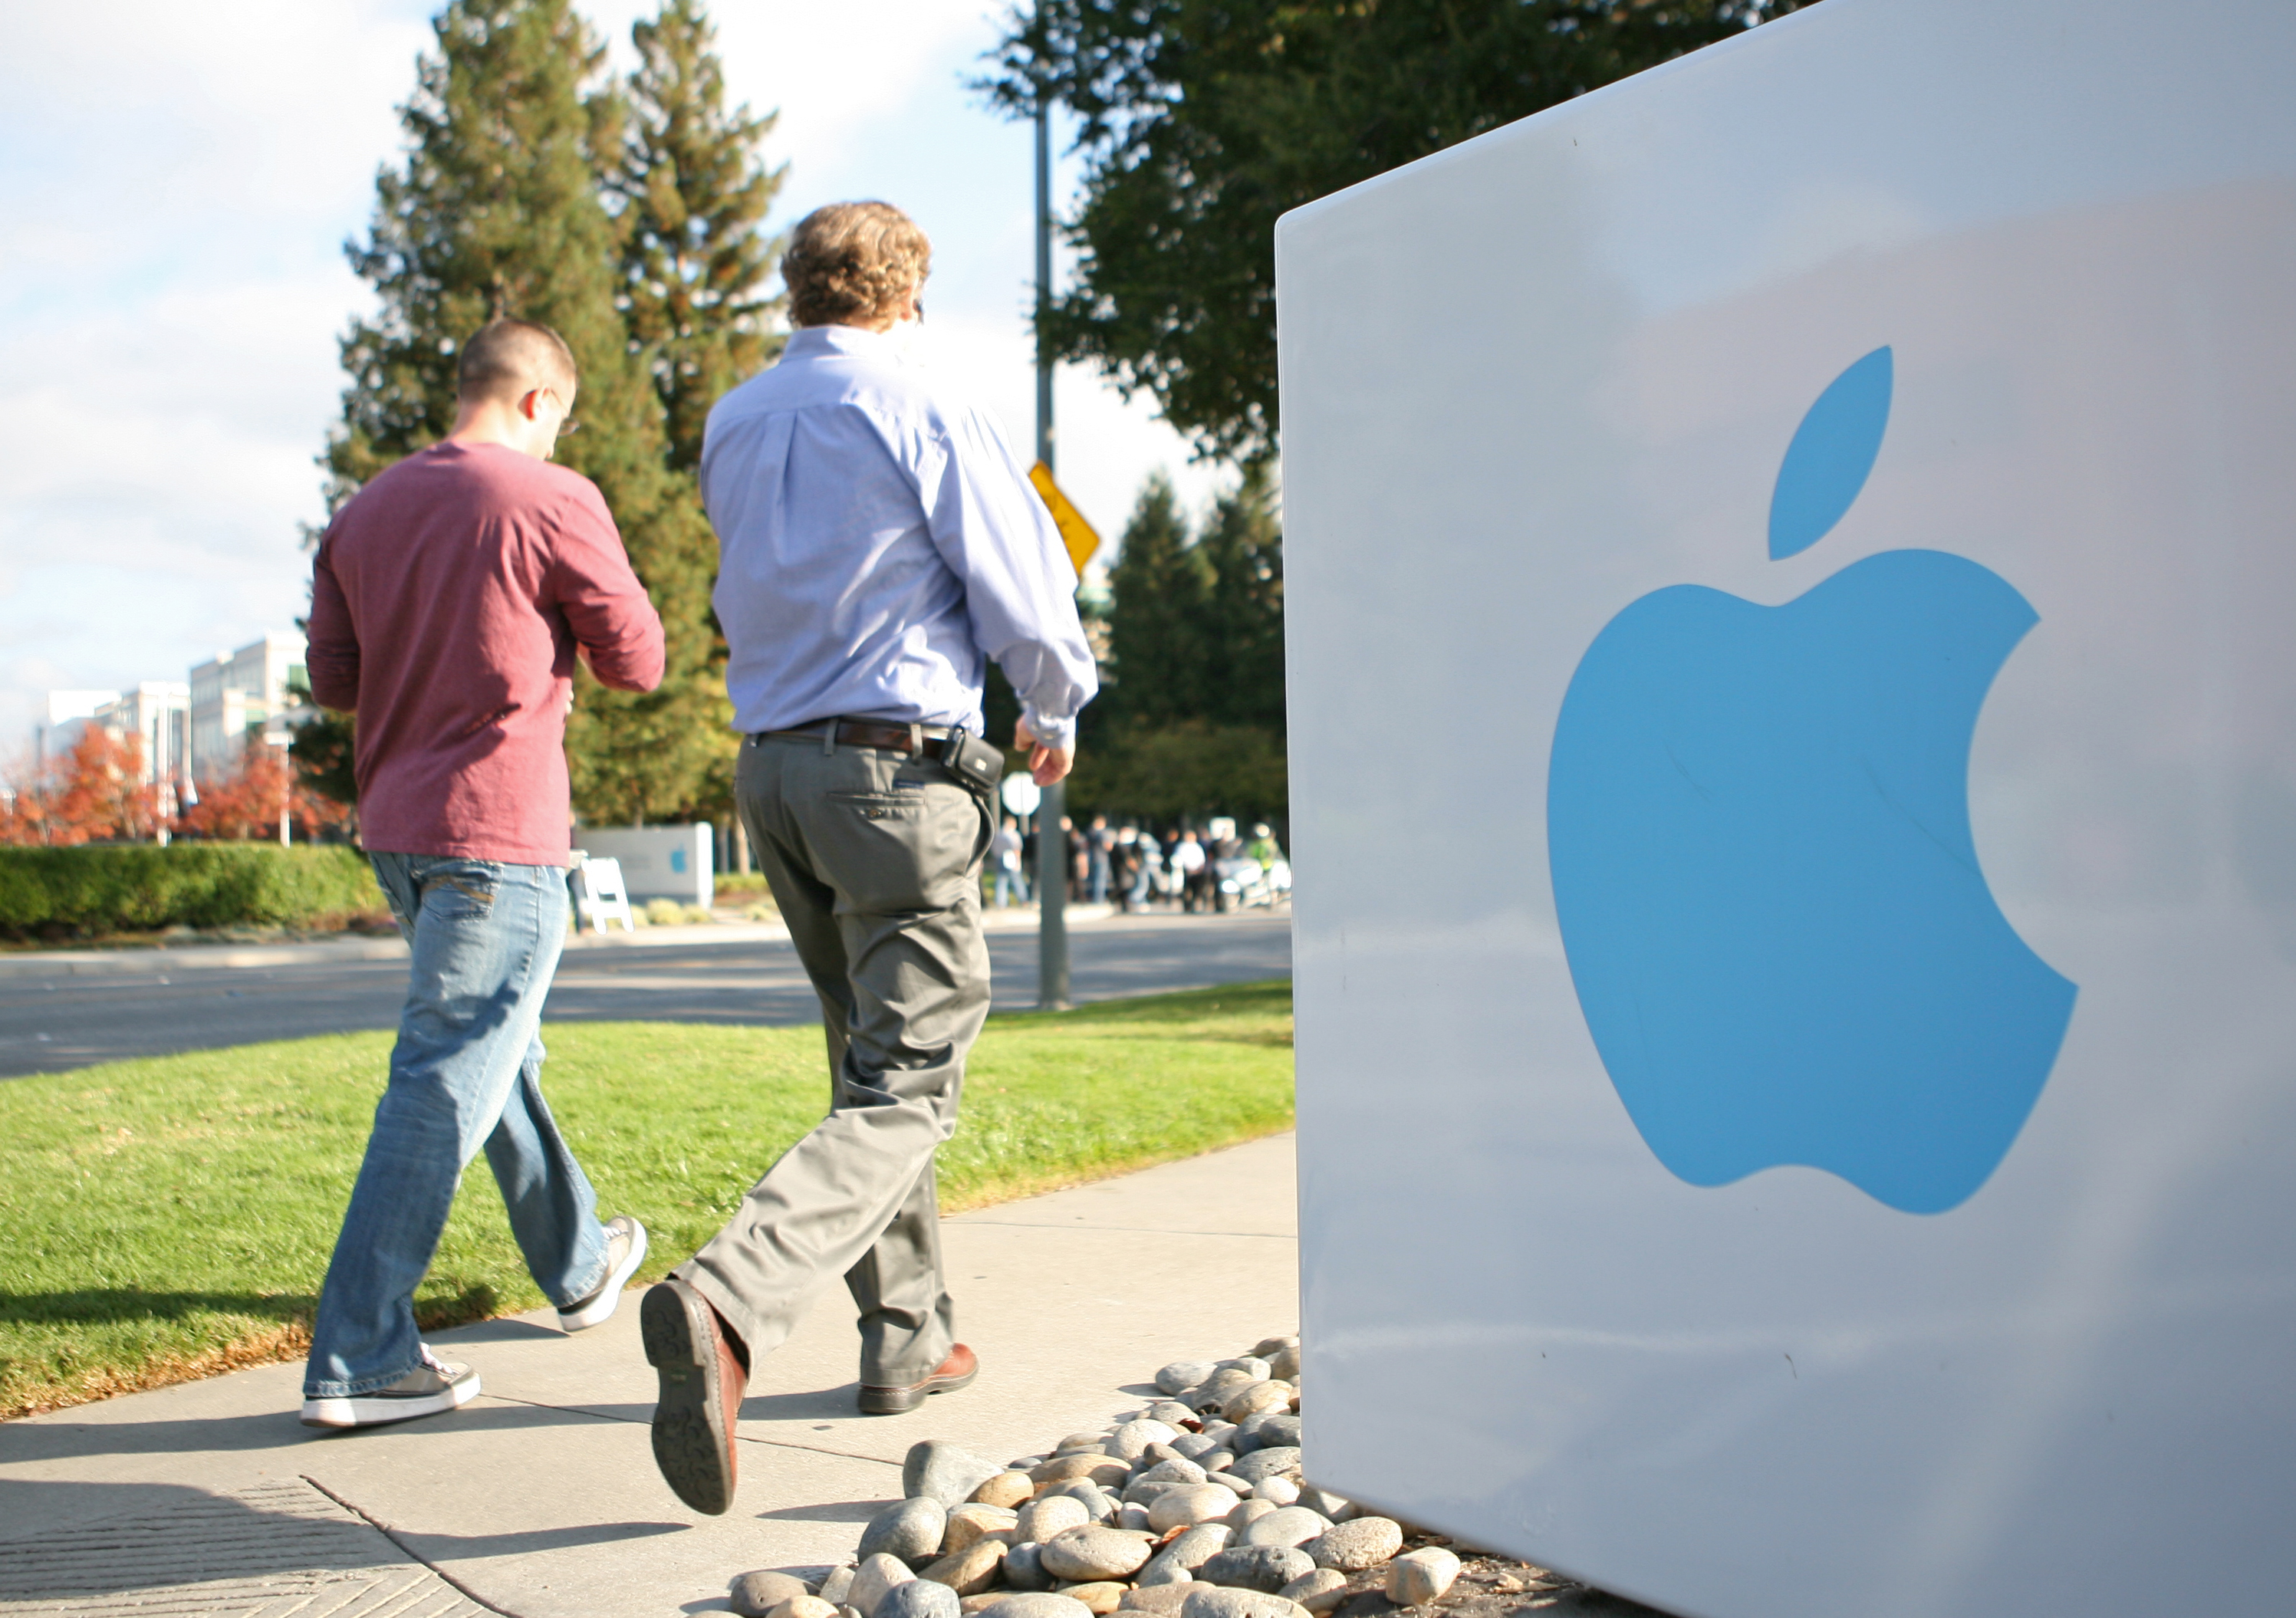 Apple employees walk towards the Apple H